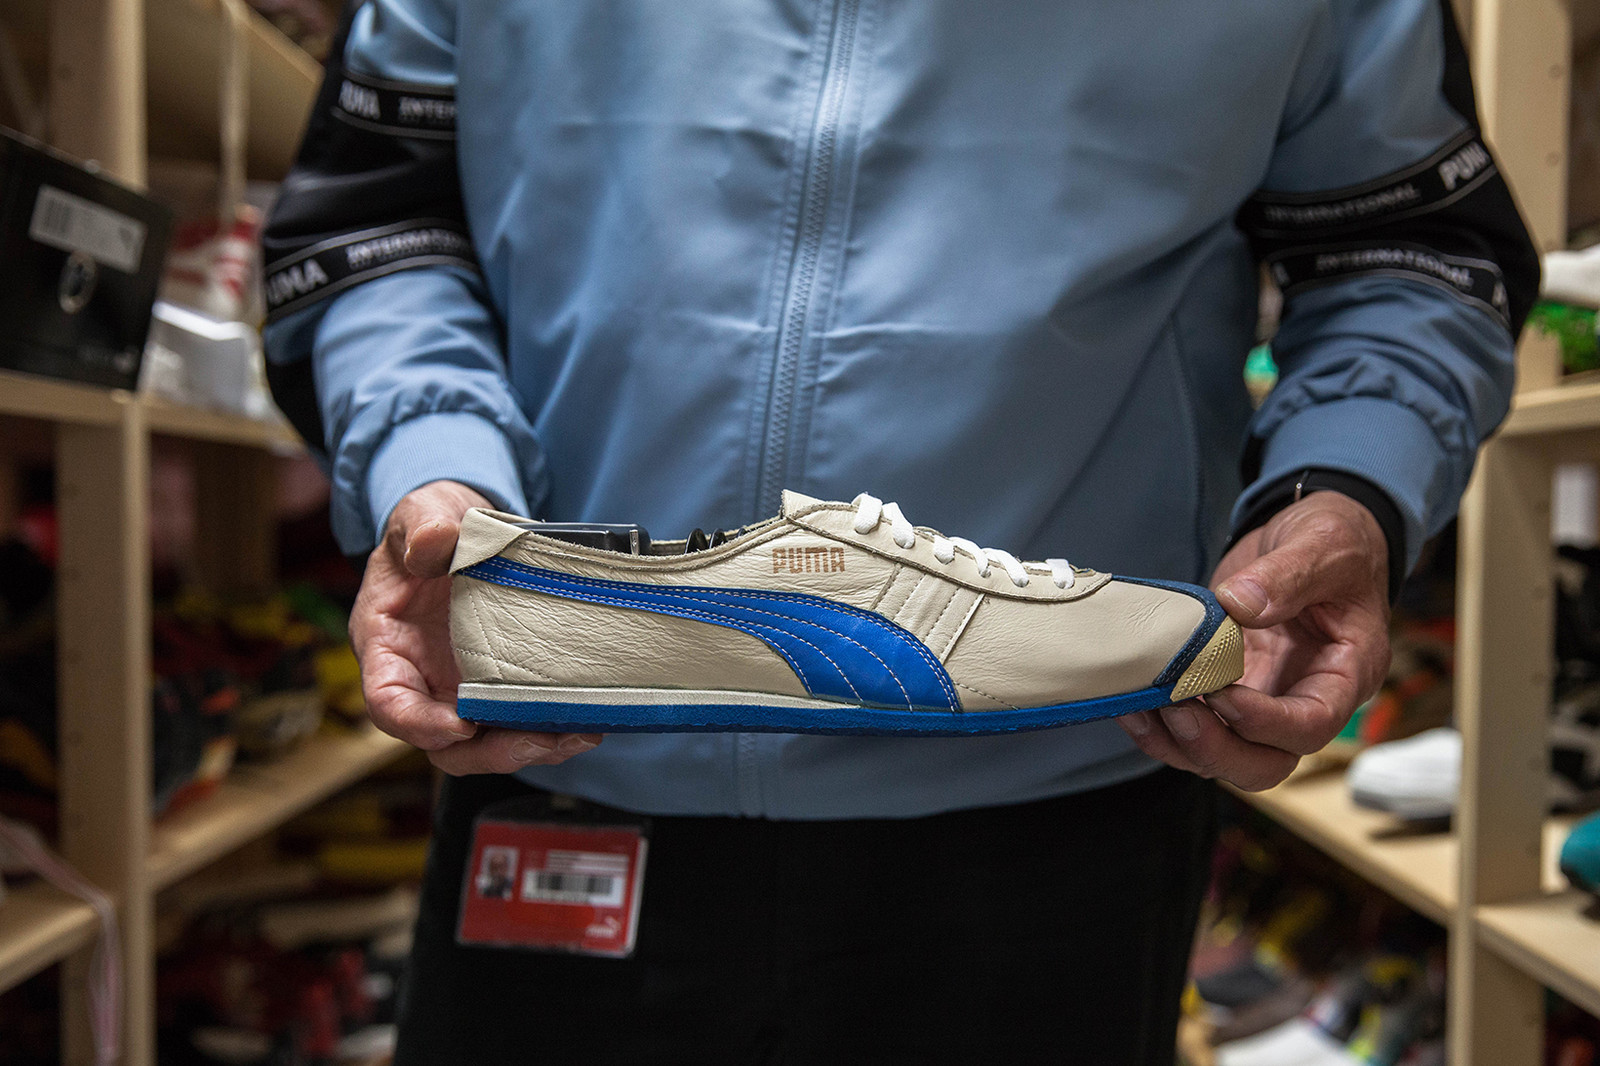 Mr. PUMA on the Brand's Rich Sporting Legacy Helmut Fischer